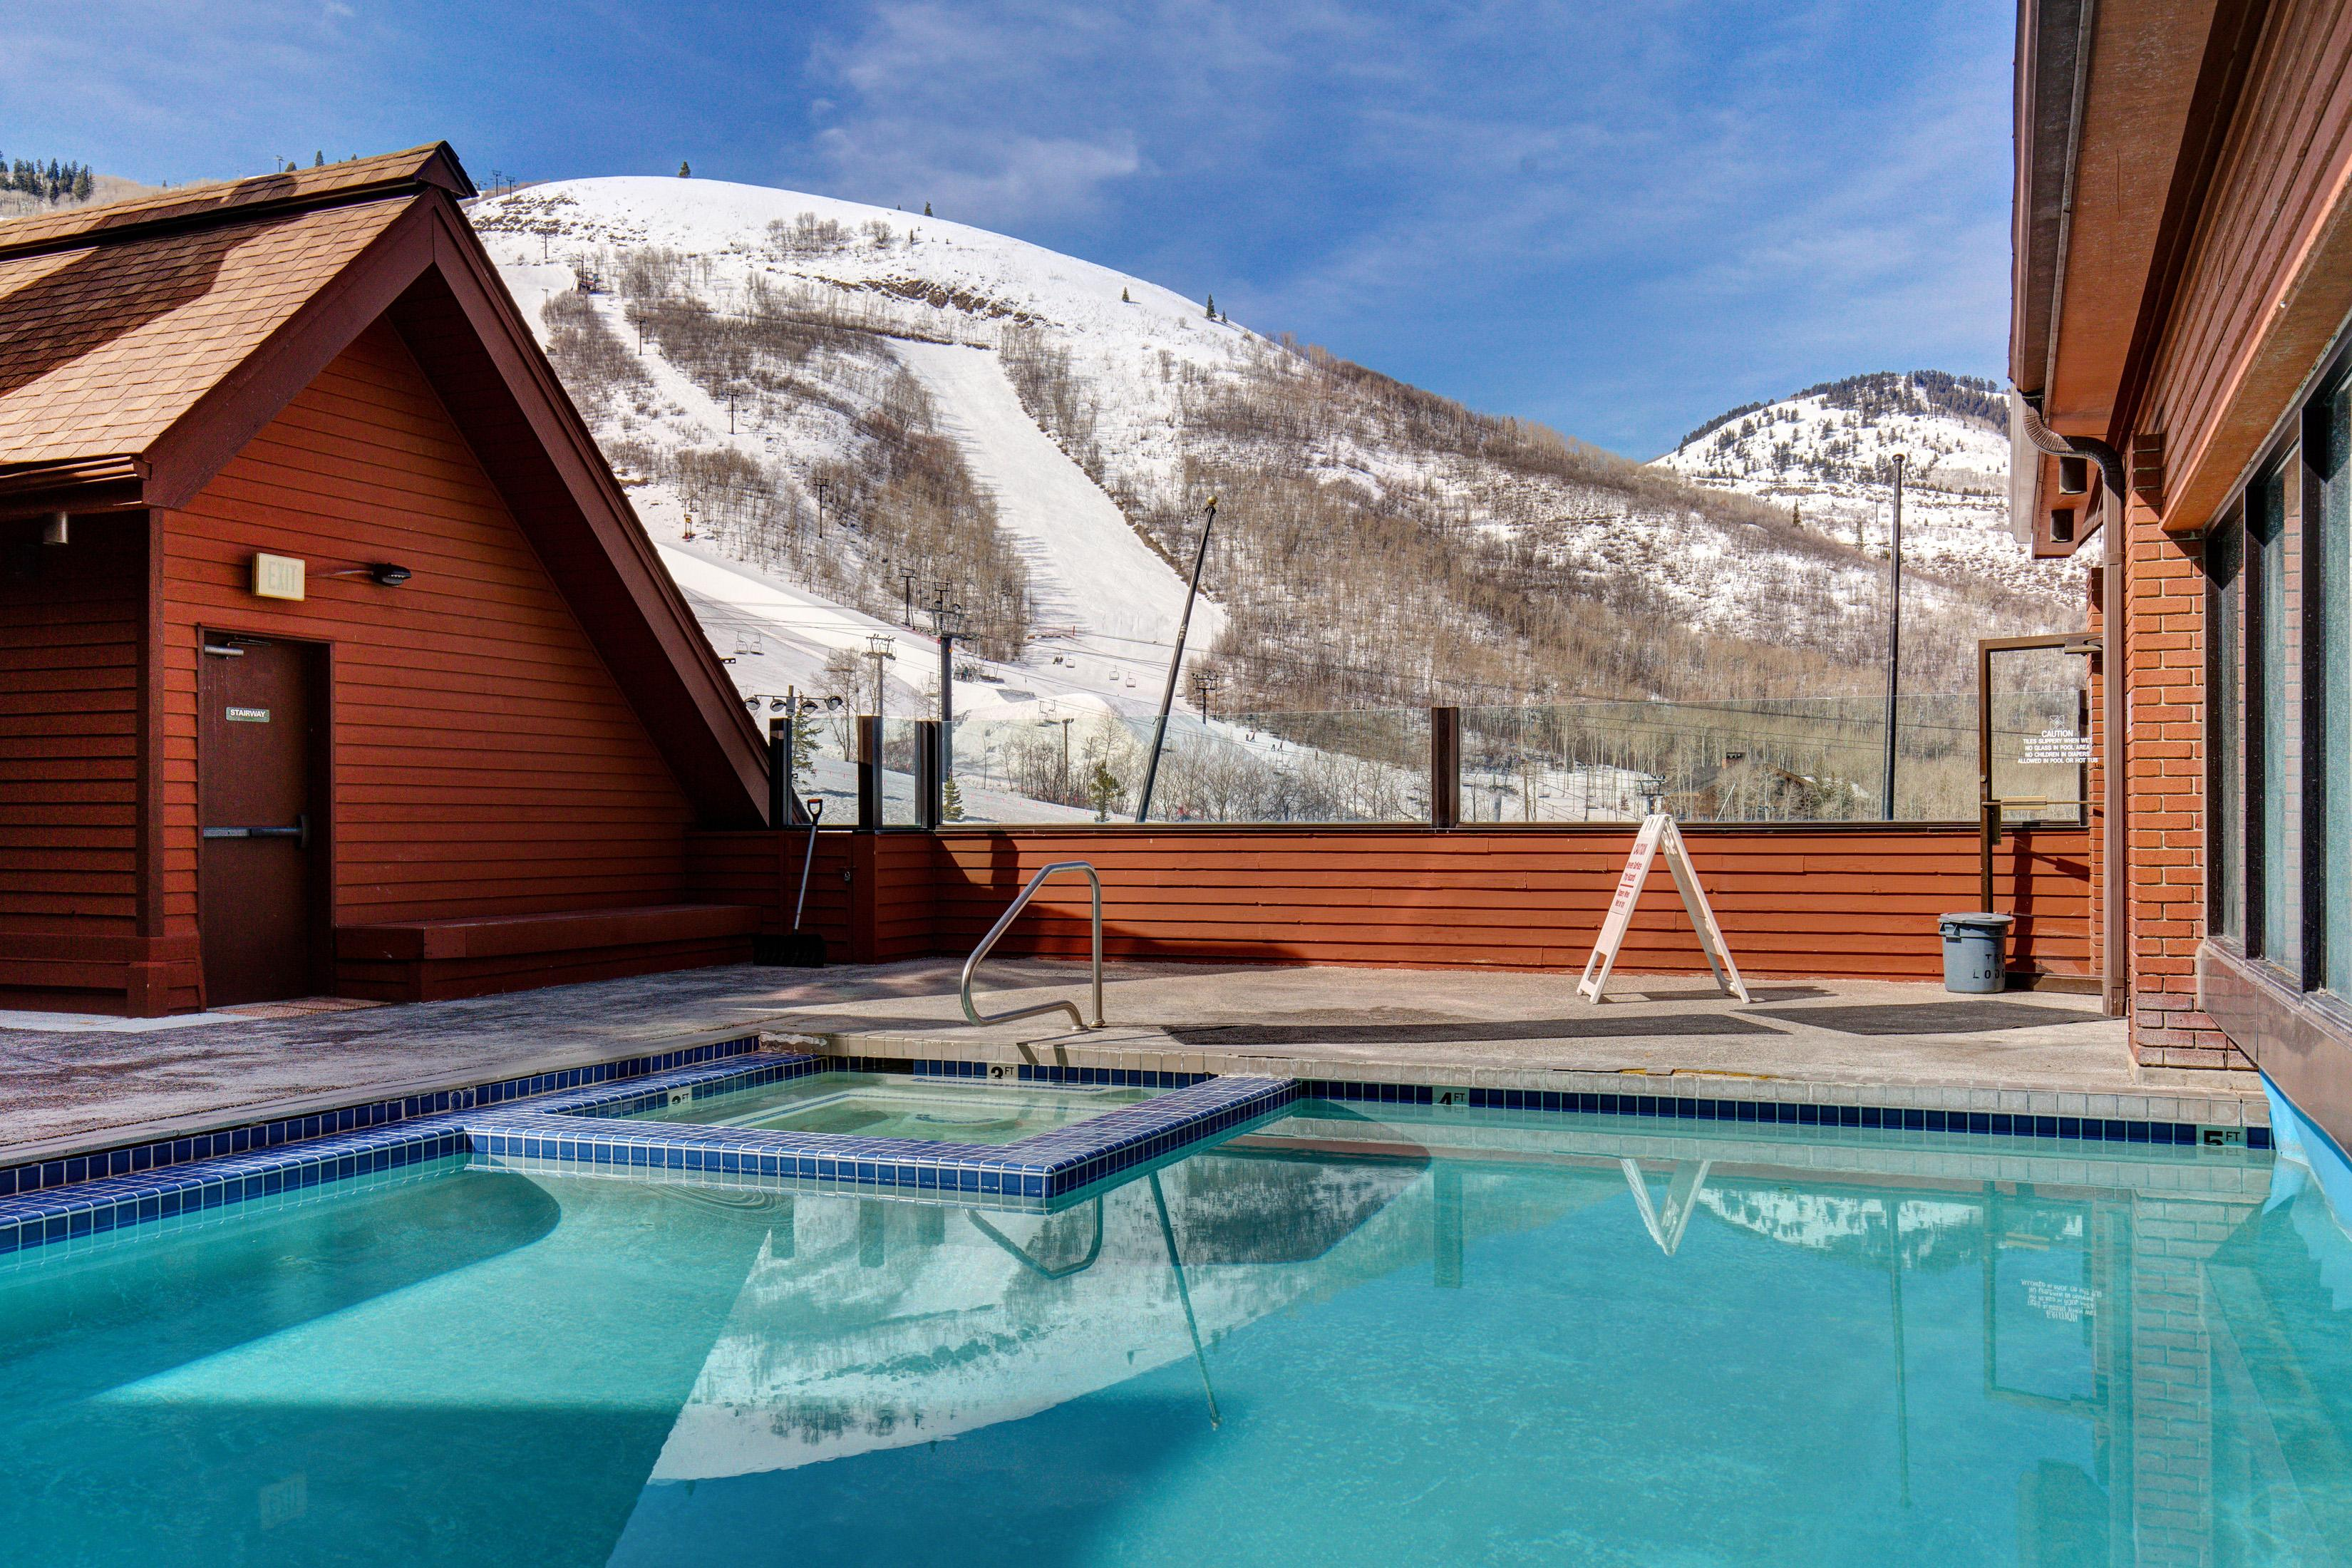 Enjoy resort amenities like a pool with a hot tub and a spectacular view of the mountains.